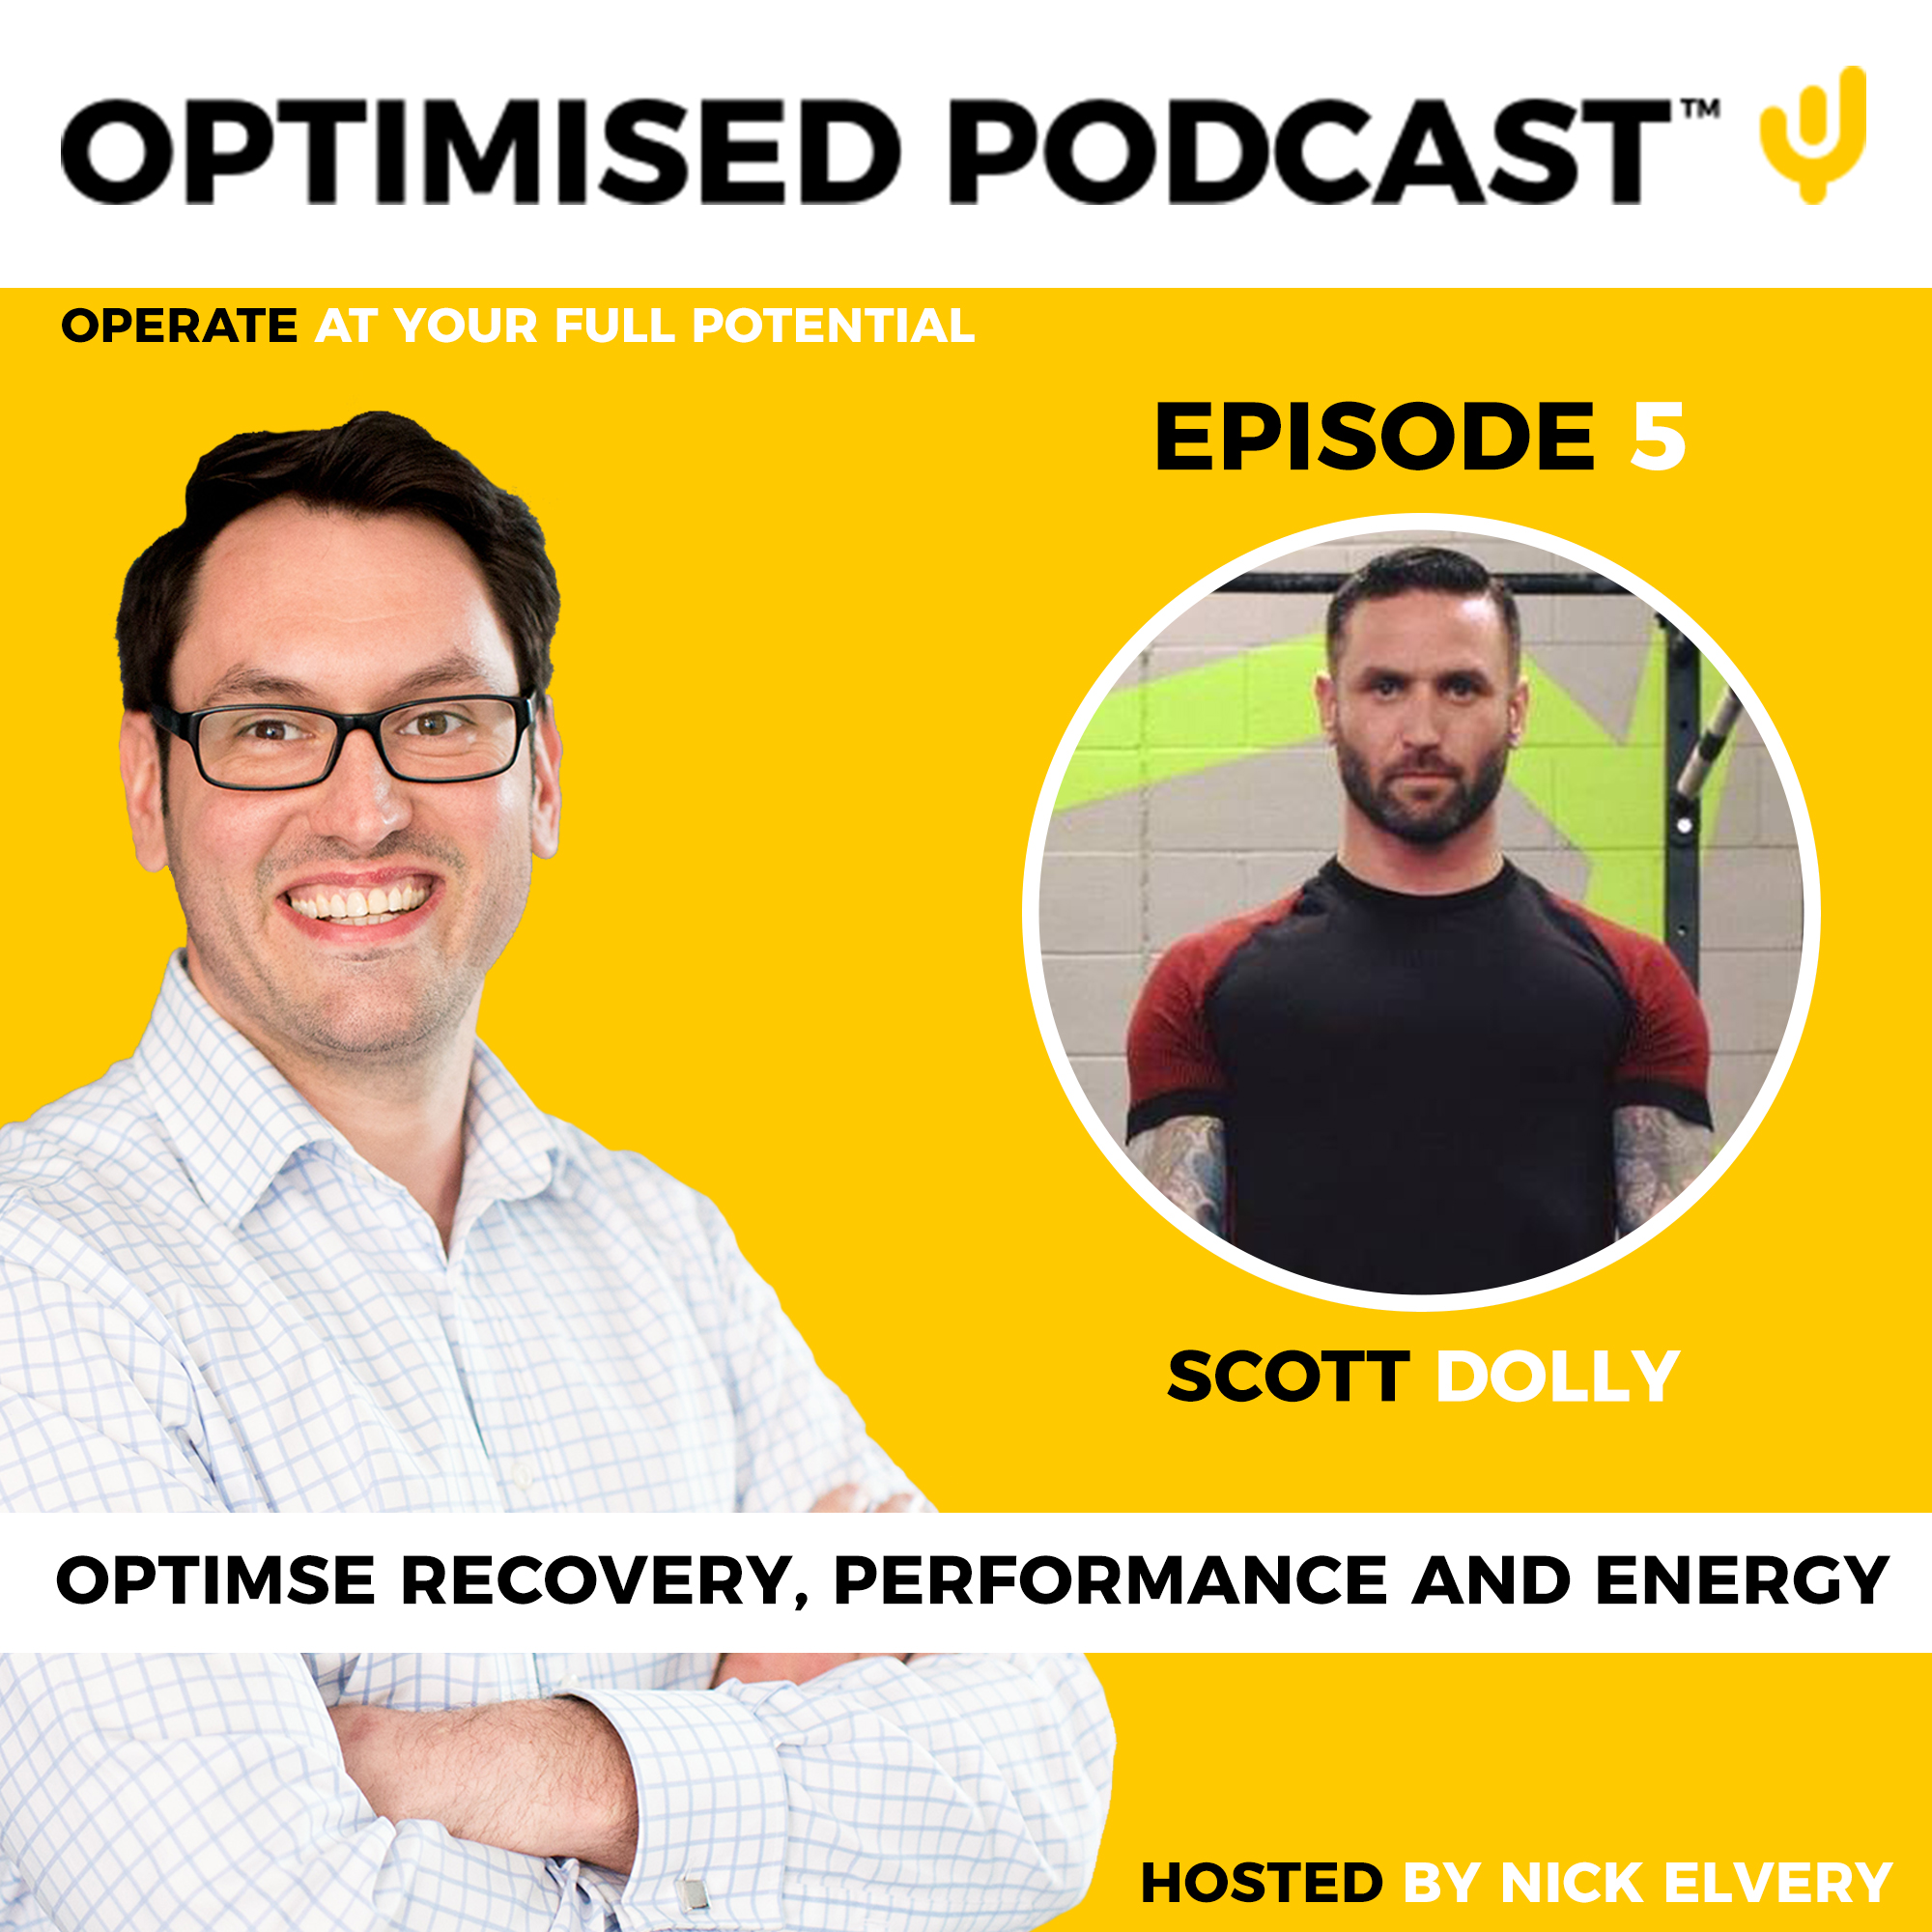 #5 - Optimised recovery, performance and energy with Scott Dolly